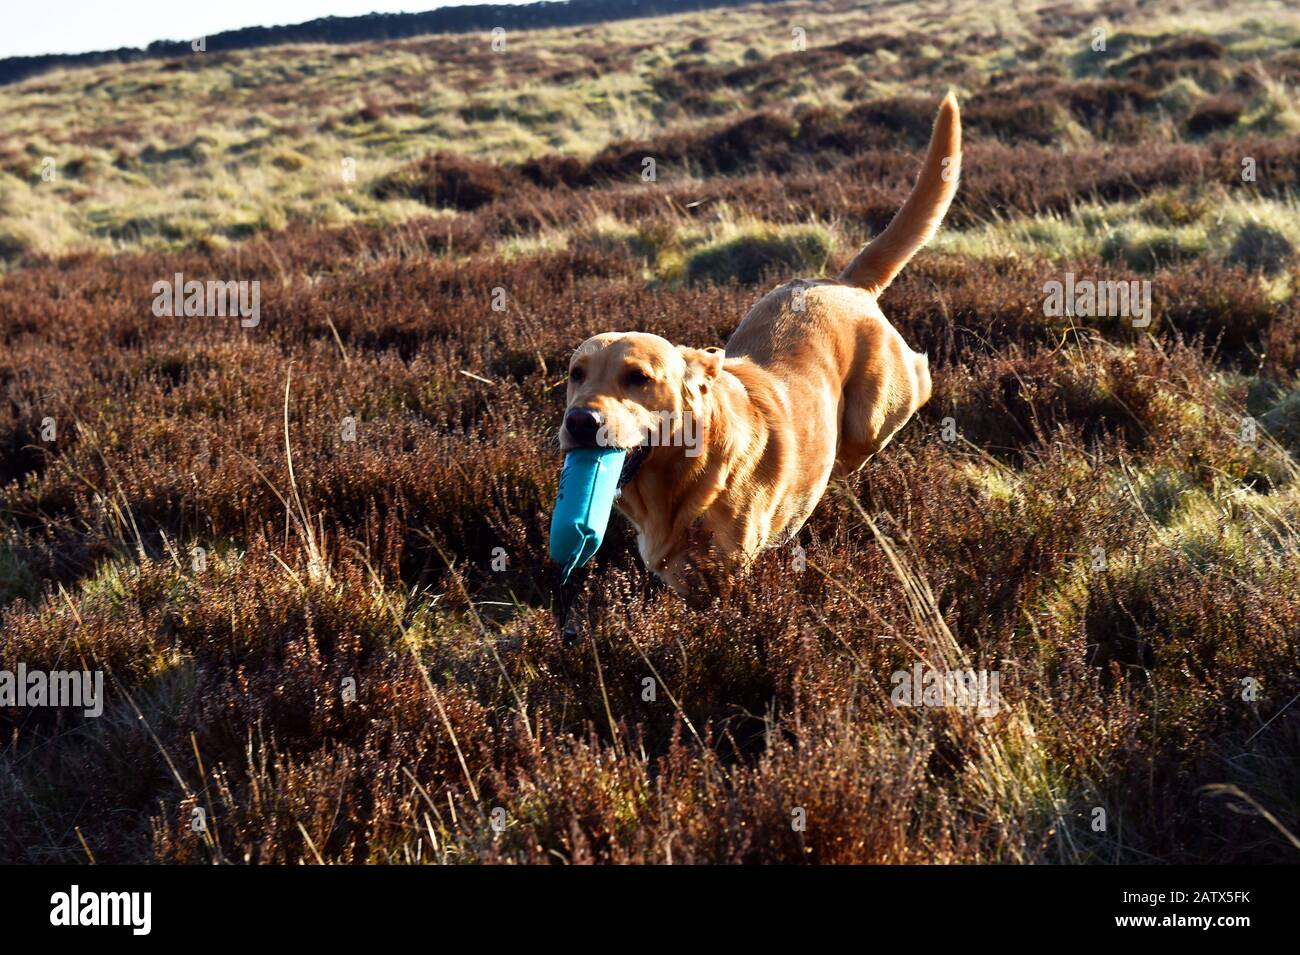 A gun dog runs with his dummy bird during a gun dogs training session Barden Moor Yorkshire Dales UK Stock Photo